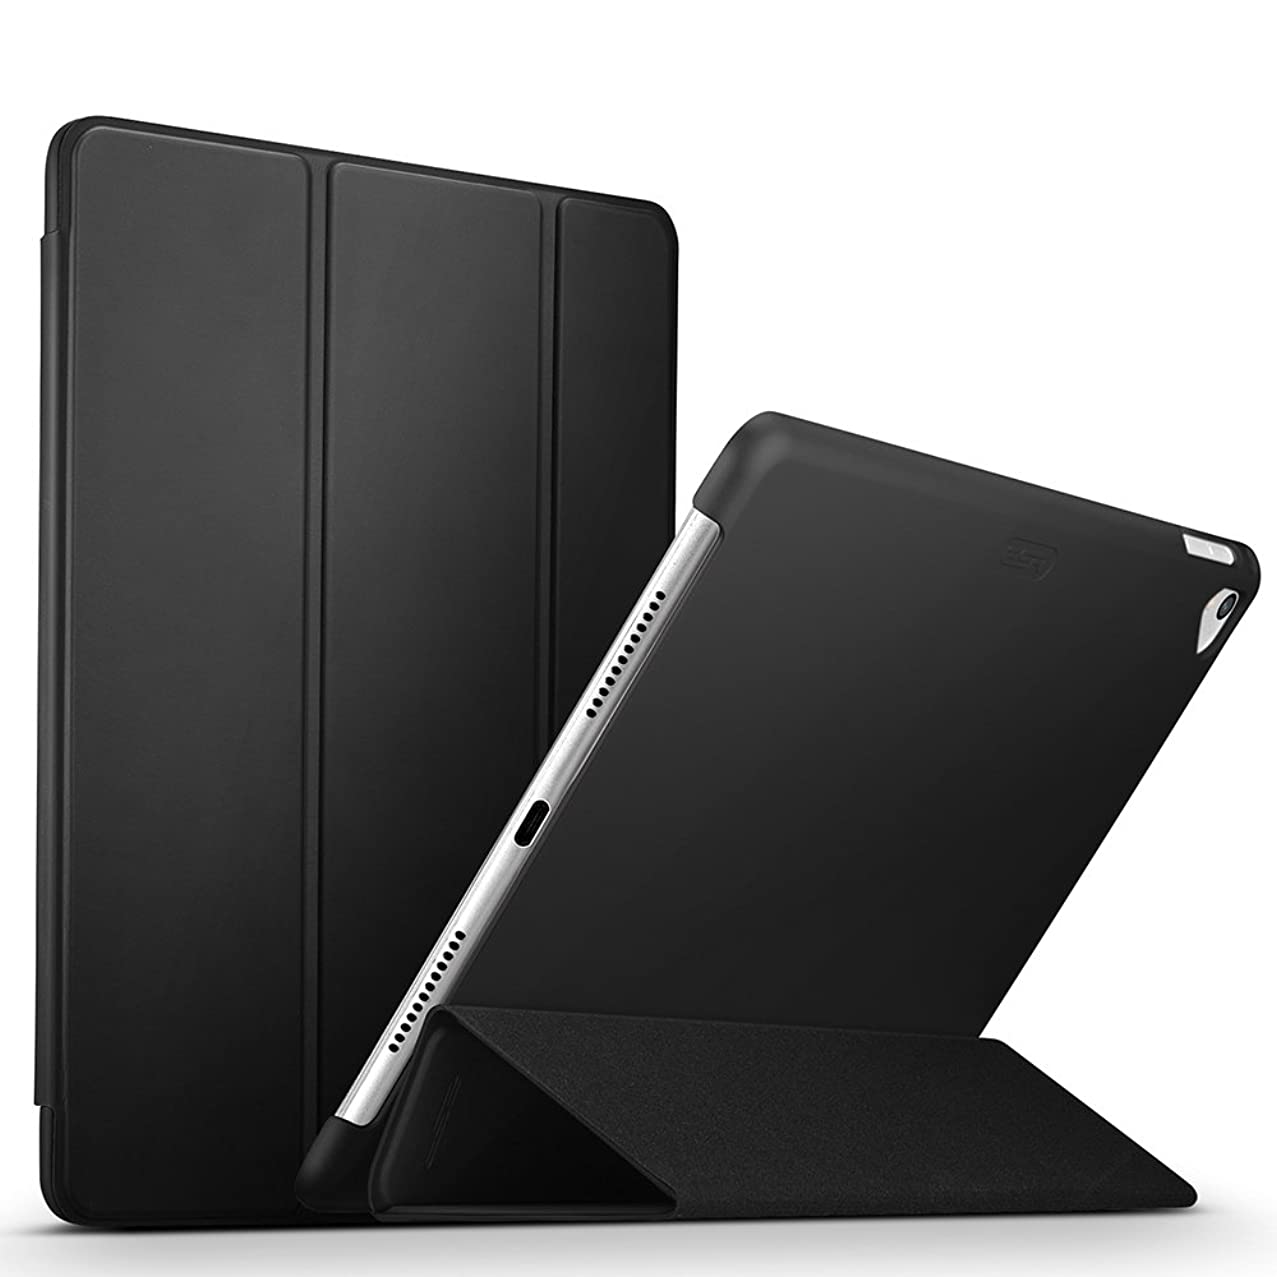 ESR Yippee Premium Trifold Case for iPad Pro 9.7, Slim Fit Smart Case with Rubberized Back Cover Auto Wake Sleep Function for iPad Pro 9.7 inch 2016 Release (Black)